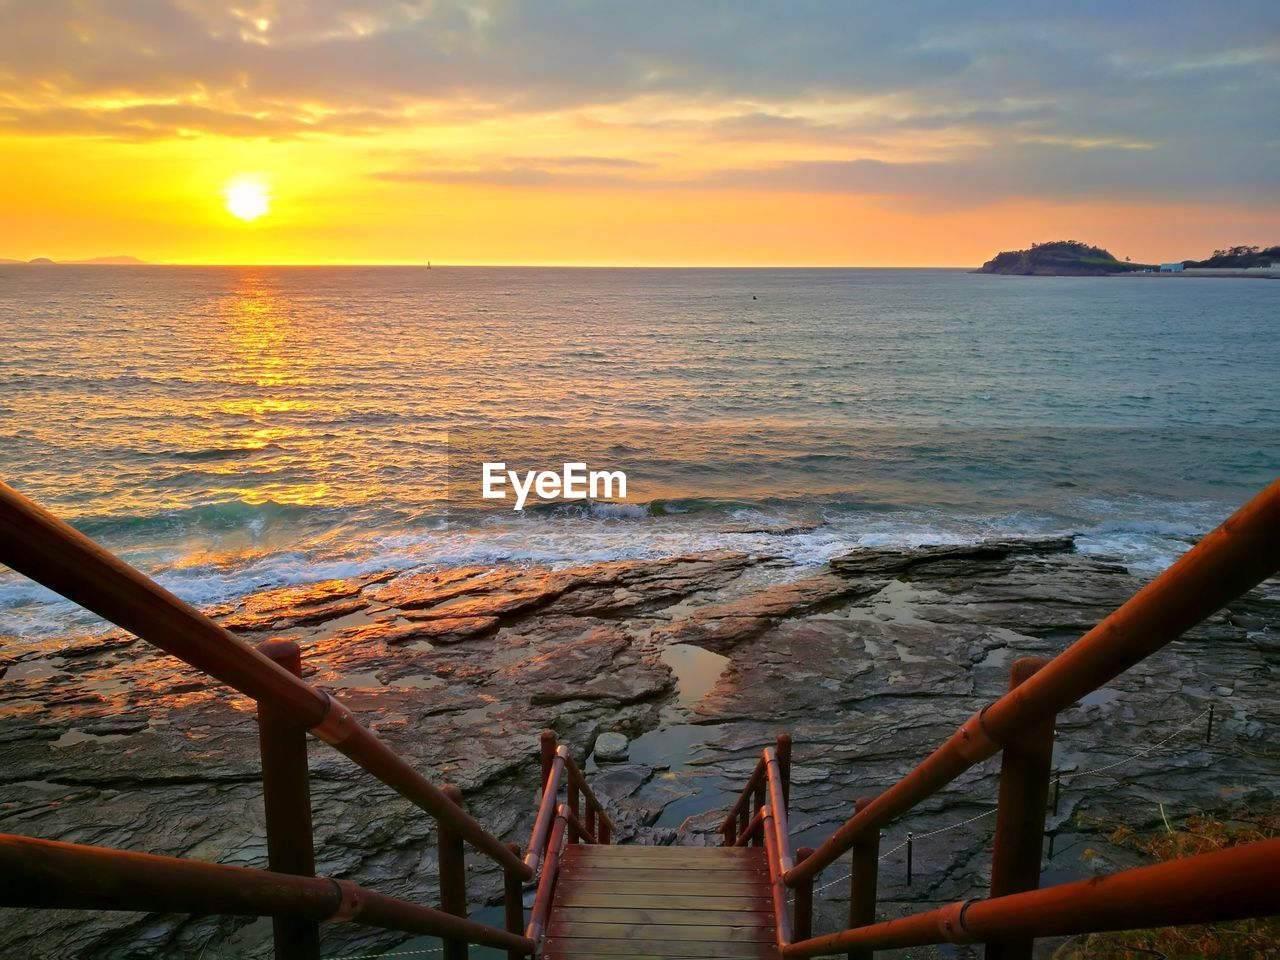 sunset, water, sky, sea, scenics - nature, beauty in nature, orange color, railing, horizon over water, nature, horizon, cloud - sky, idyllic, tranquility, tranquil scene, no people, outdoors, land, beach